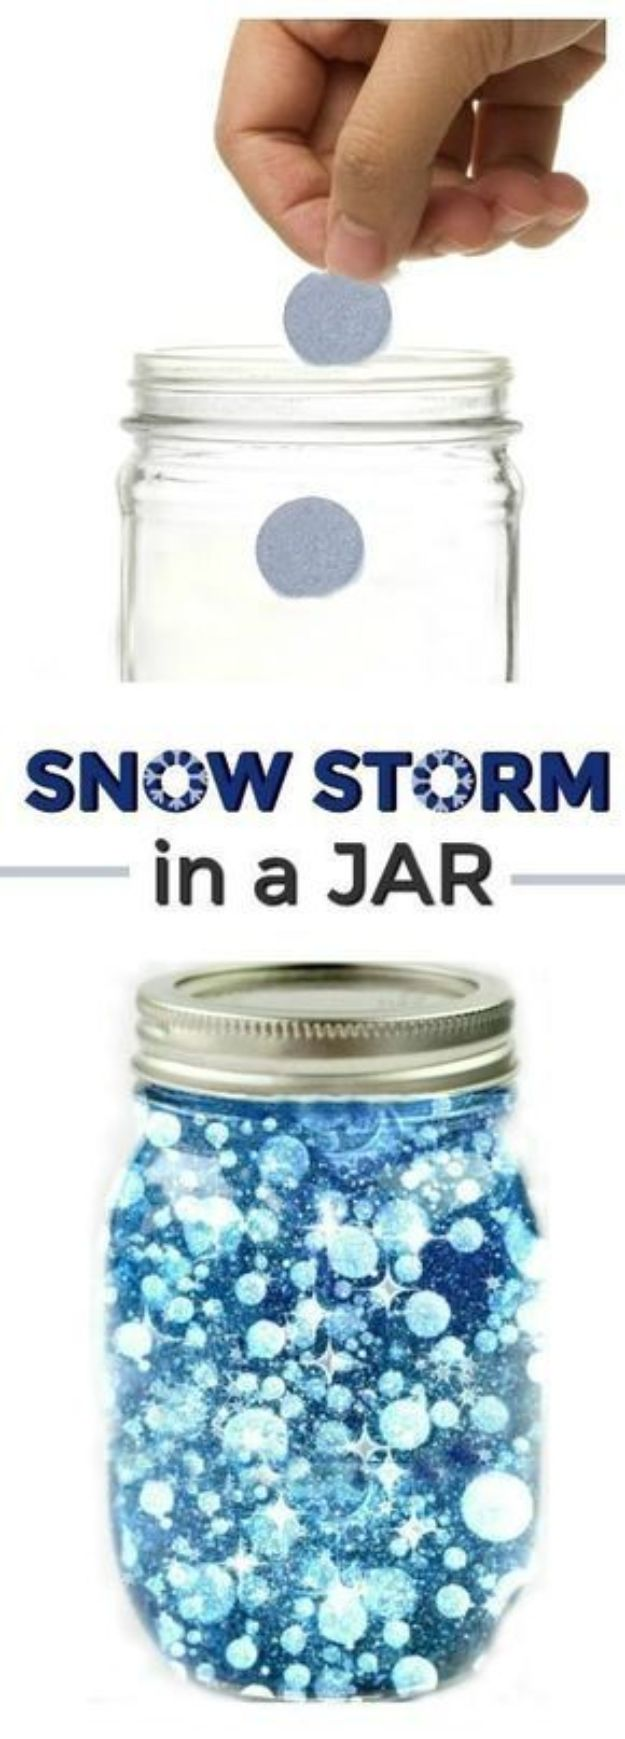 Winter Crafts for Toddlers and Kids - Snow Storm In A Jar - Easy Art Projects and Craft Ideas for 2 Year Olds, Preschool Age Children - Simple Indoor Activities, Things To Make At Home in Wintertime - Snow, Snowflake and Icicle, Snowmen - Classroom Art Projects #kidscrafts #craftsforkids #winters